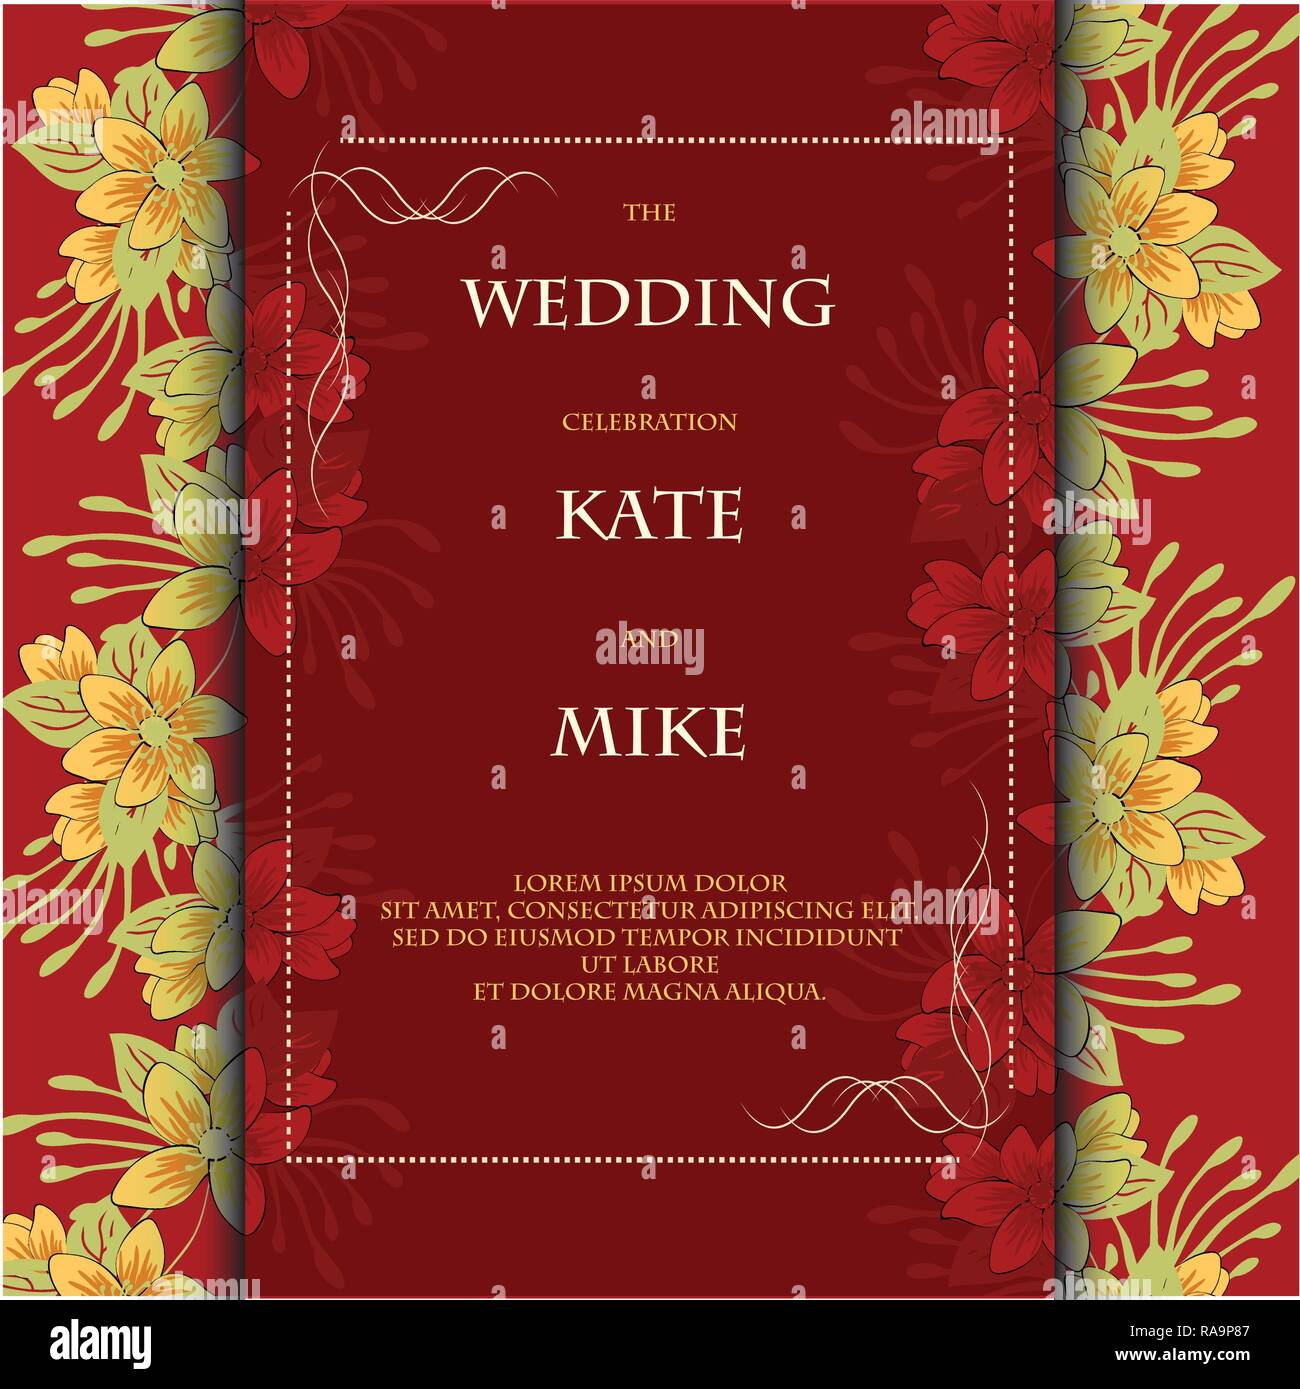 Wedding Invitation Card Template With Flower Floral